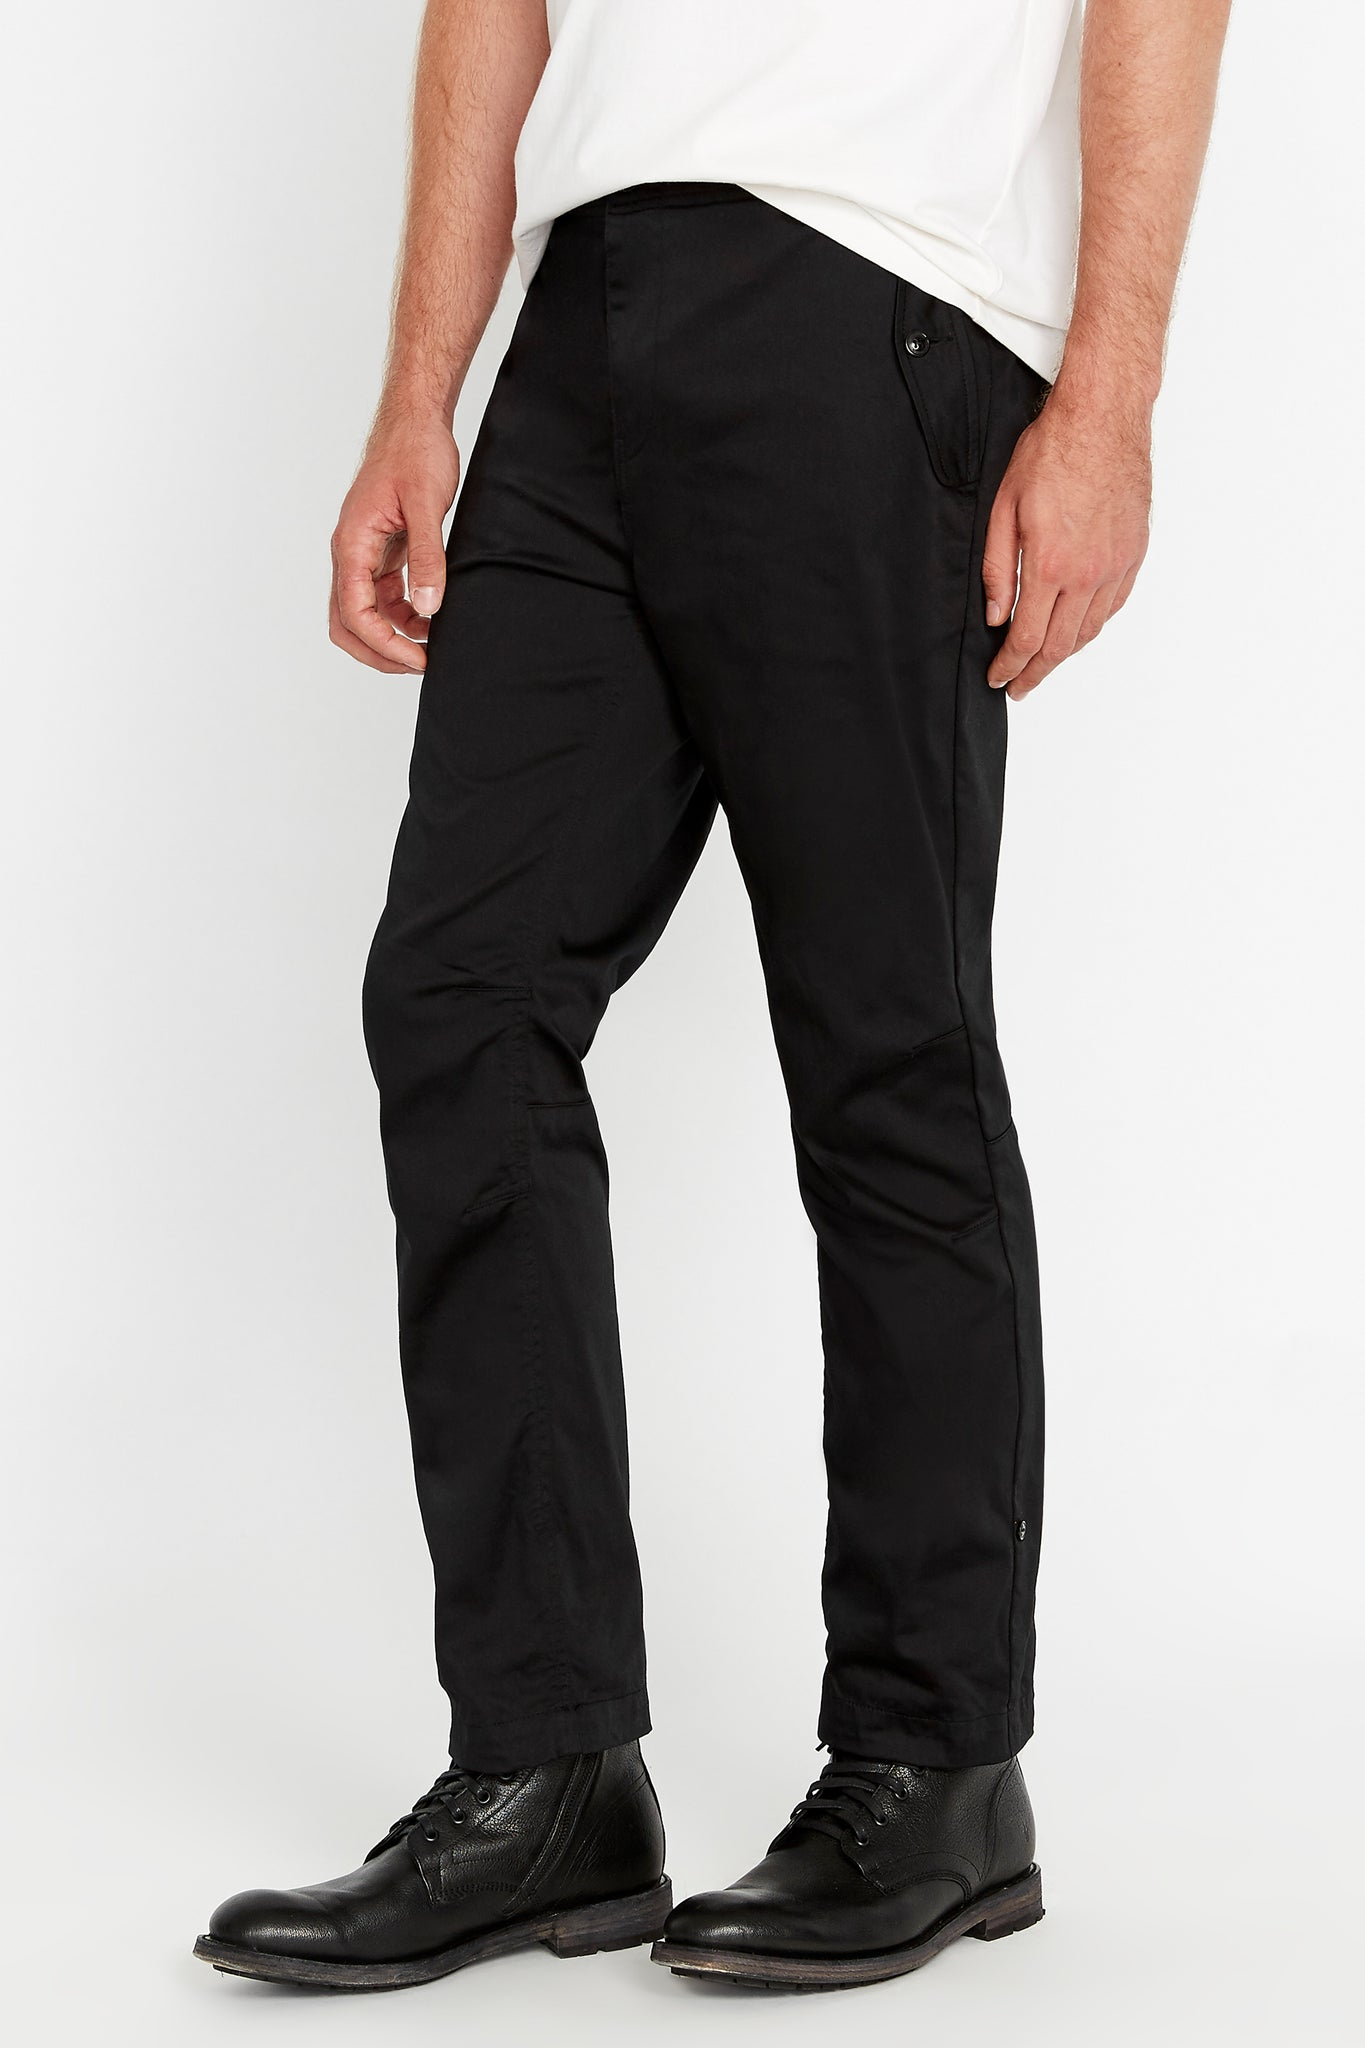 Side view of men wearing black pants with button flap pockets